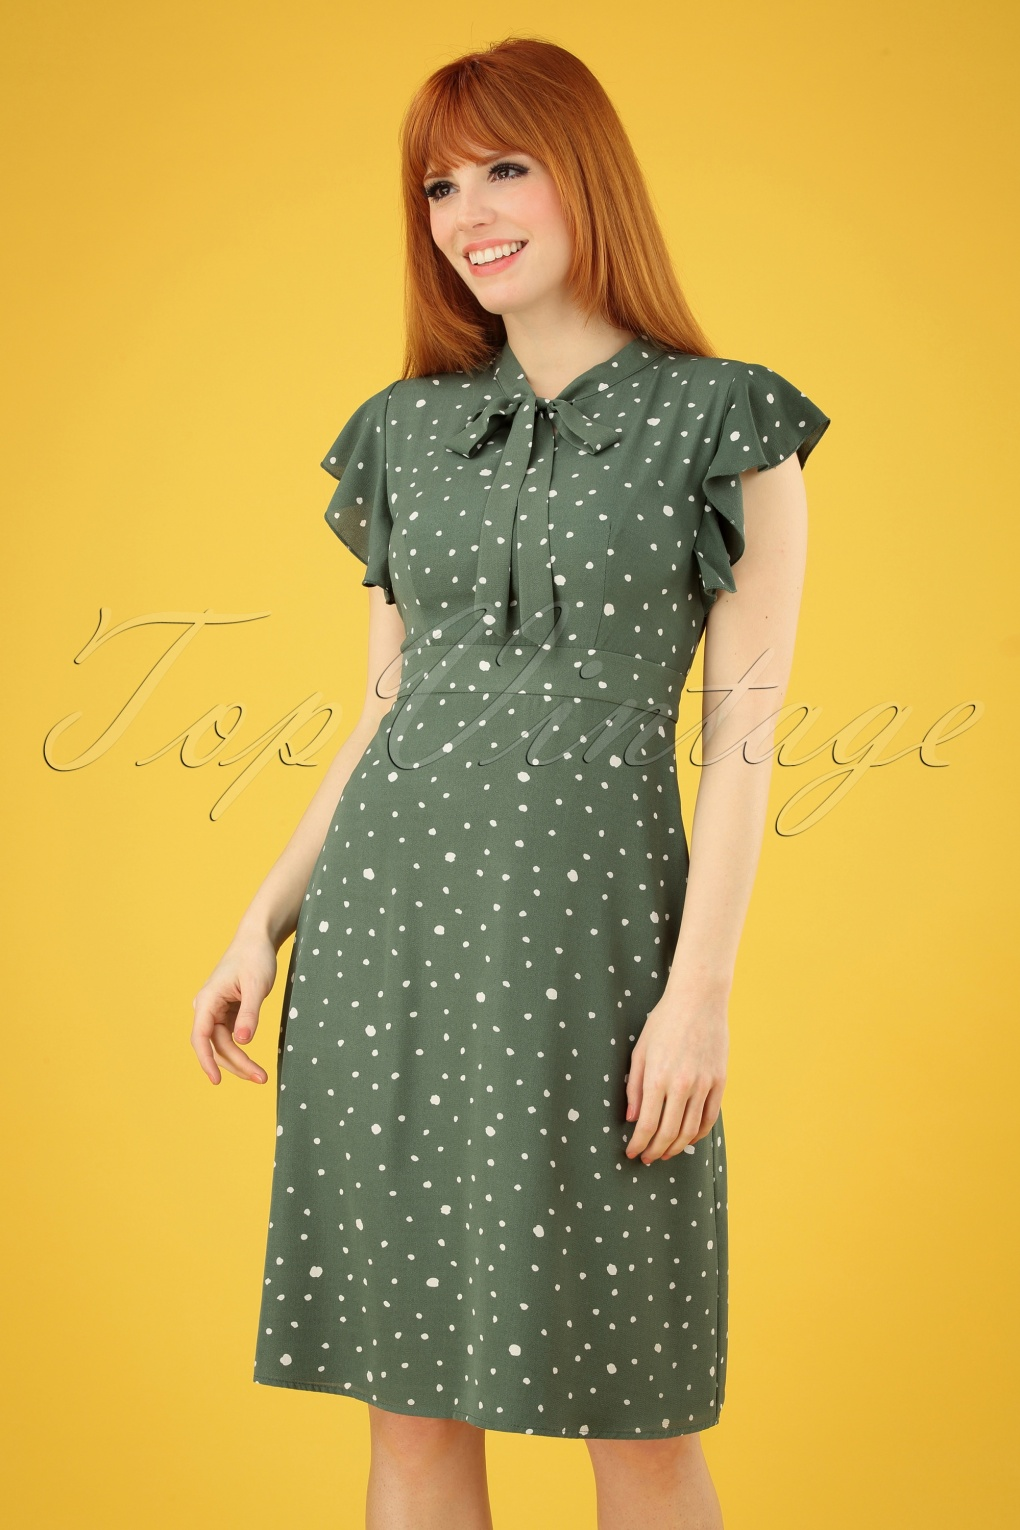 46d75d59c6b What Did Women Wear in the 1940s  40s Fashion Trends 40s Florrie Polka  Ruffle Dress